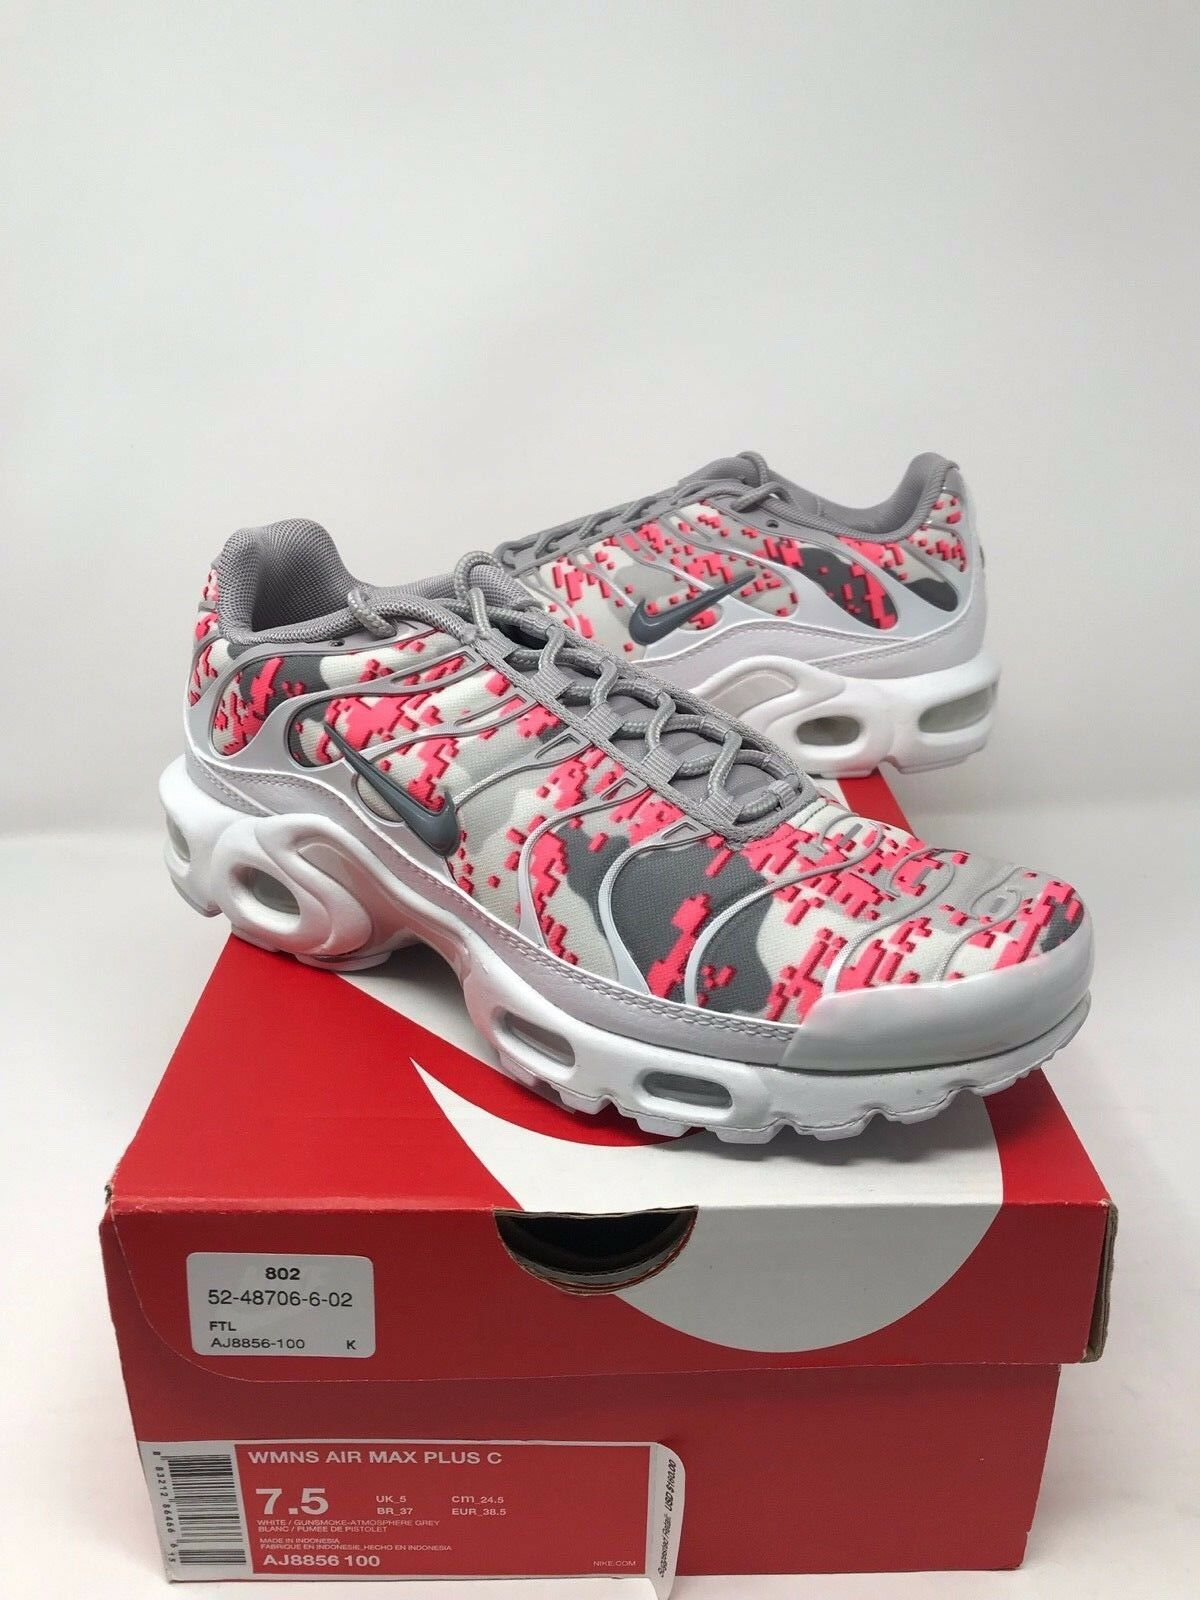 New Nike Air Max Plus Women Gunsmoke Atmosphere Grey Hot Punch J8856100 size 7.5